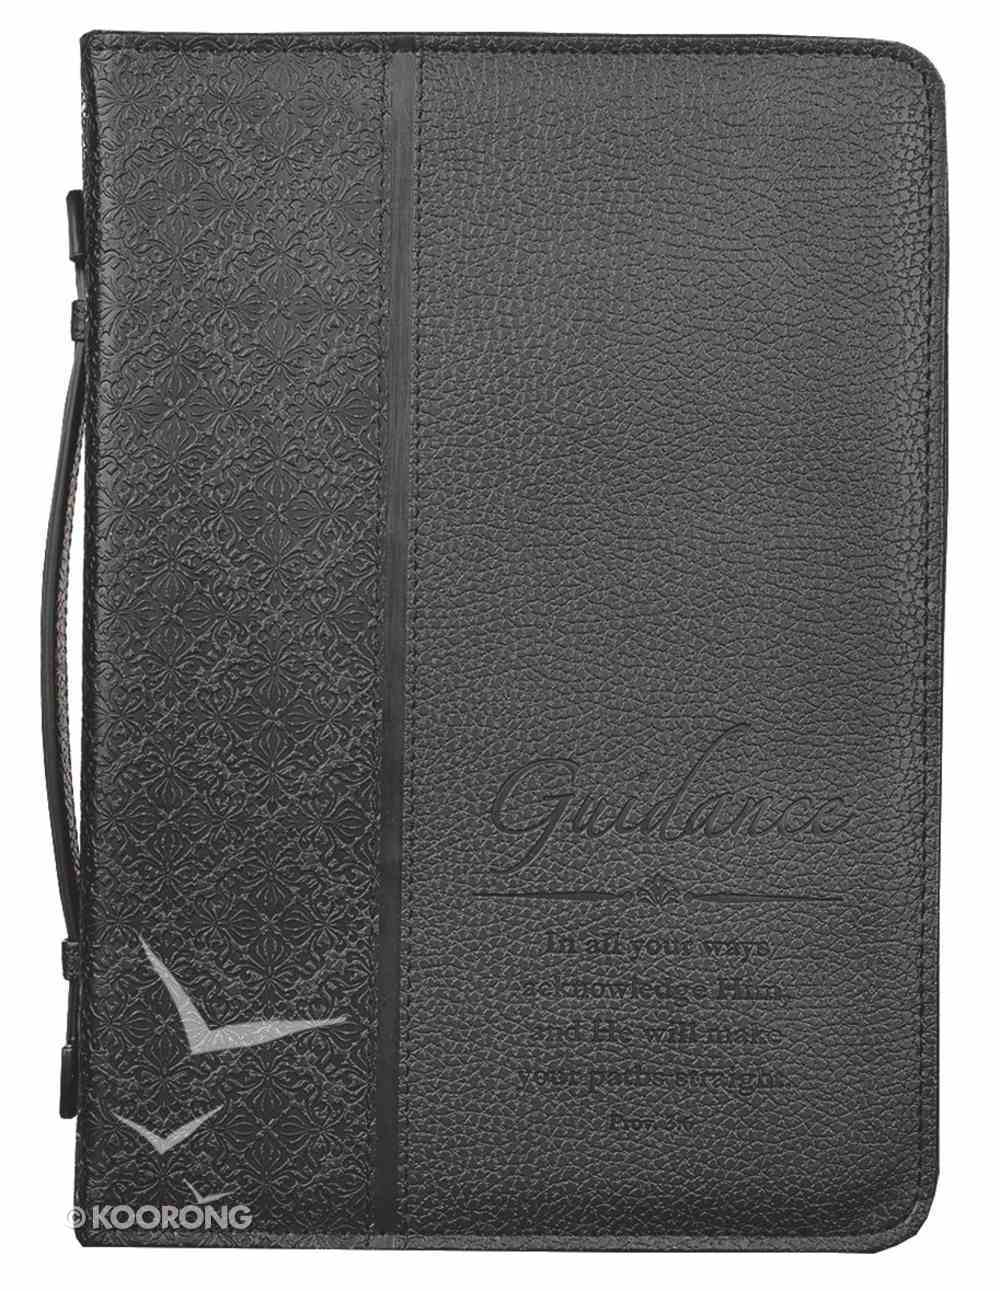 Bible Cover Classic Large: Guidance Proverbs 3:6 Black Luxleather Bible Cover